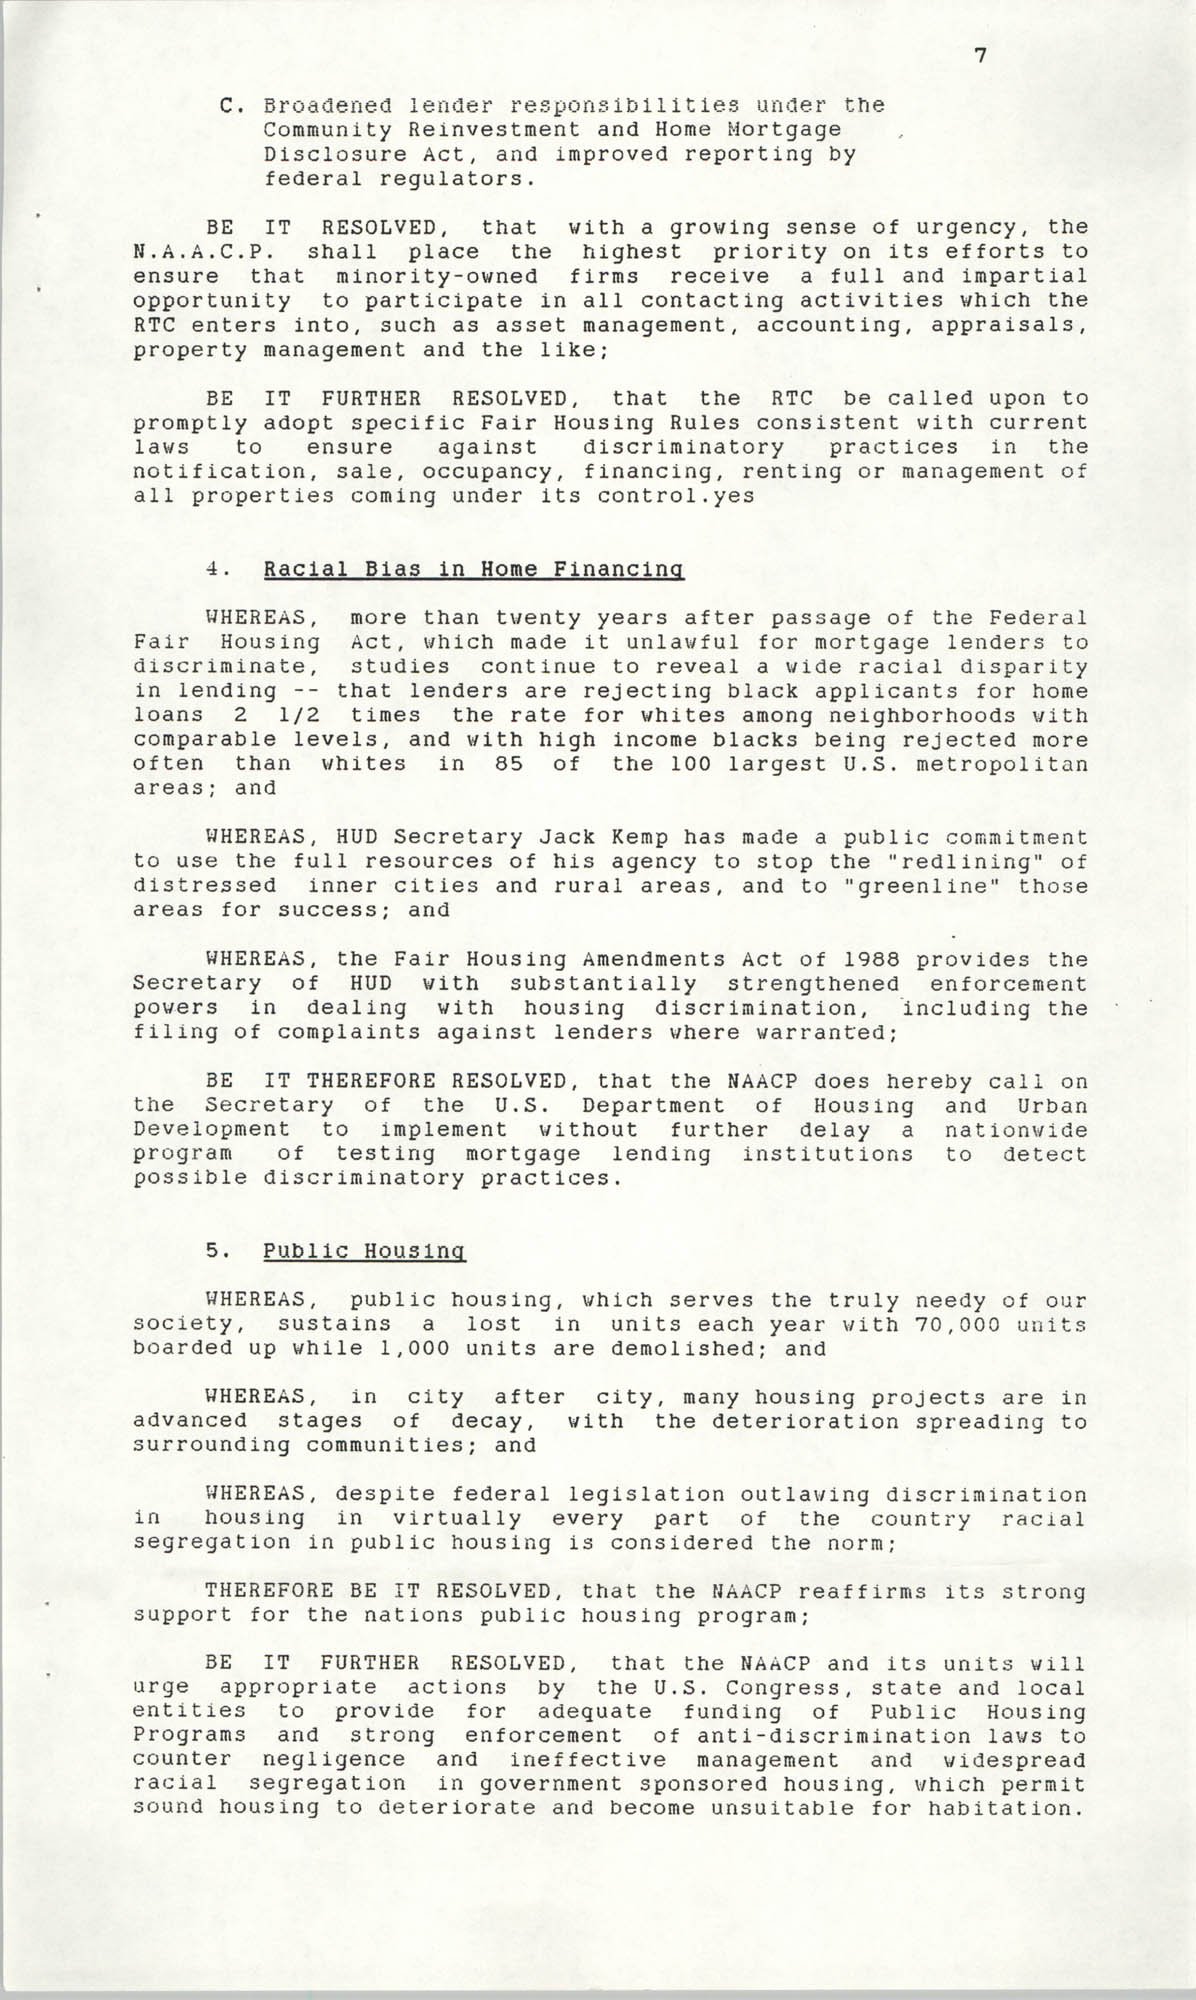 Resolutions Submitted Under Article X, Section 2 of the Constitution of the NAACP, 1990, Page 7